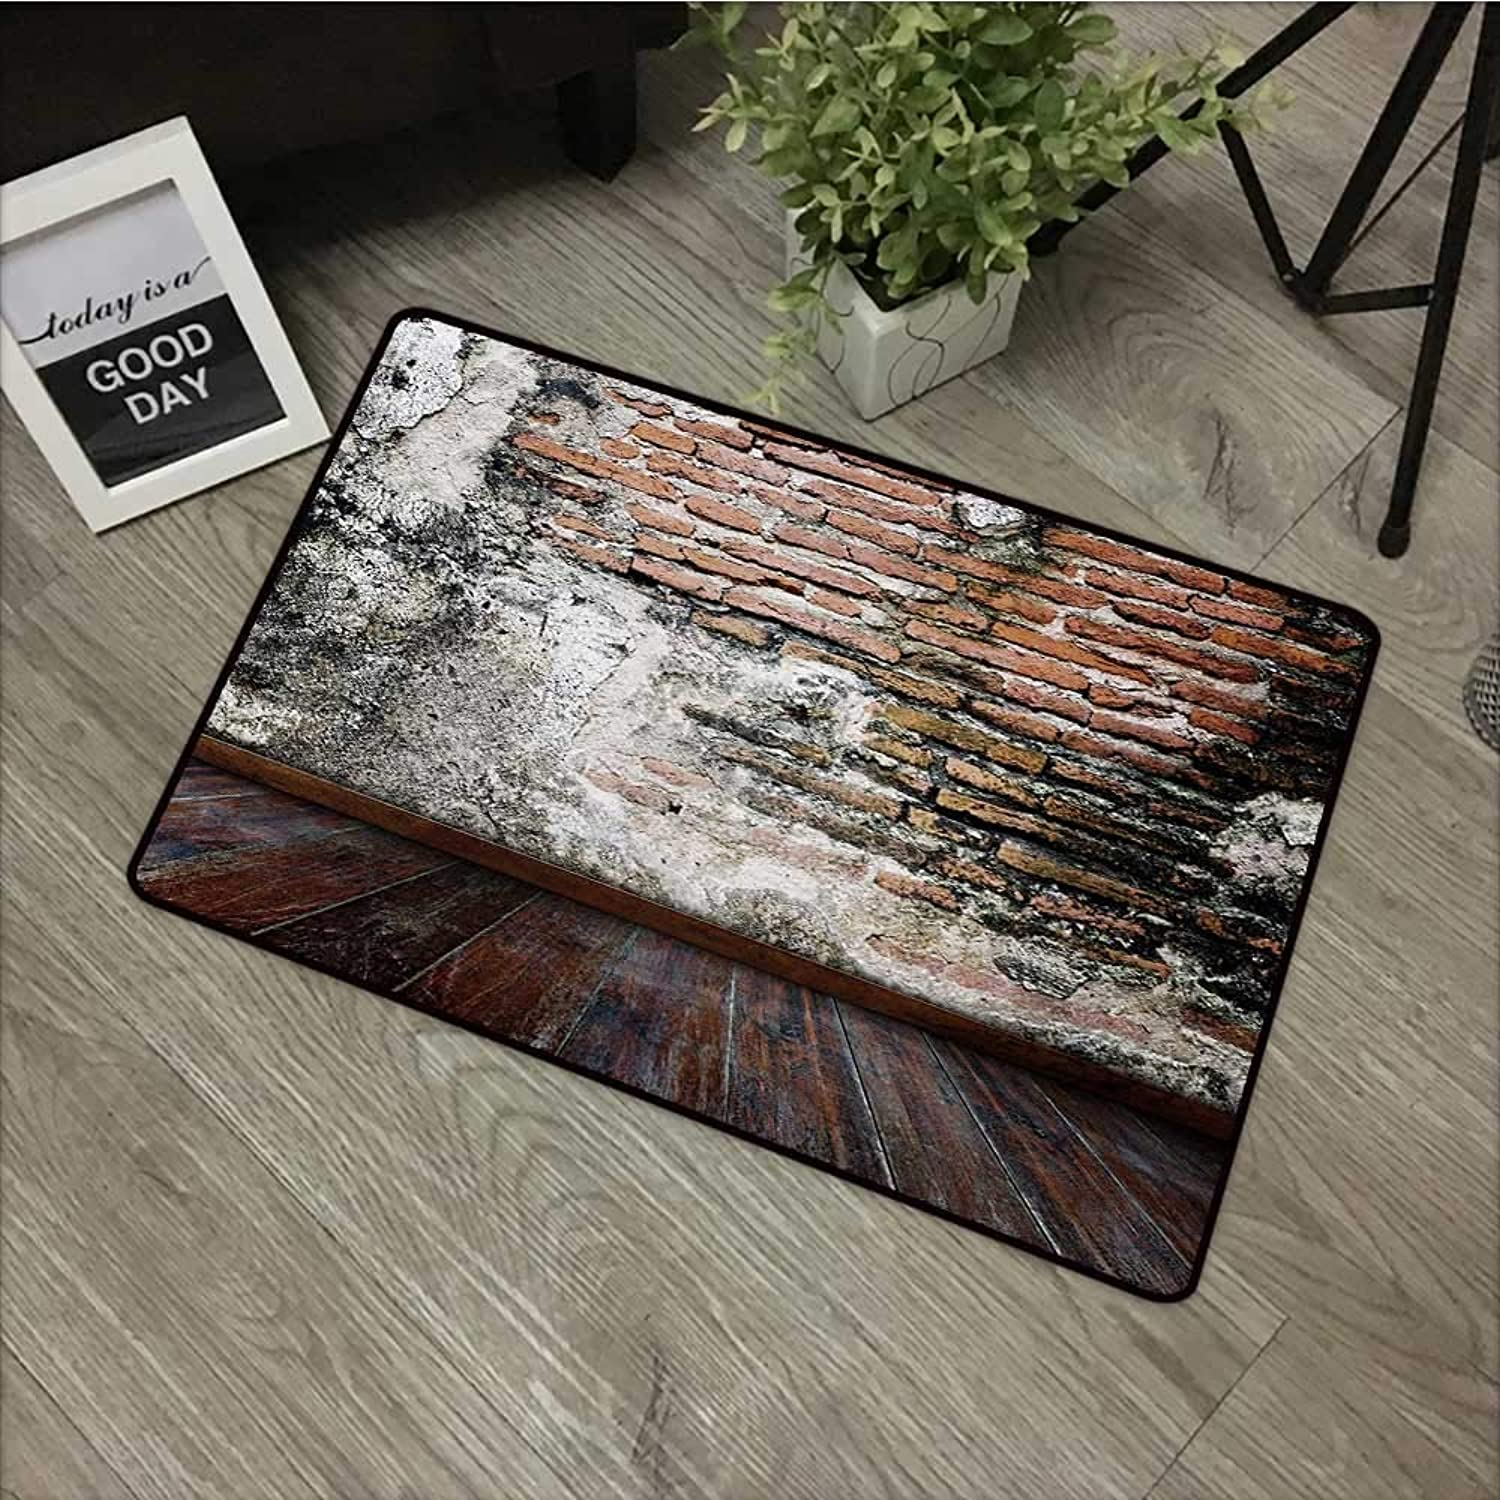 Learning pad W31 x L47 INCH Rustic,Worn Looking Wall Photograph with Wooden Floors Ancient Building Structure,Cinnamon Black White Non-Slip Door Mat Carpet